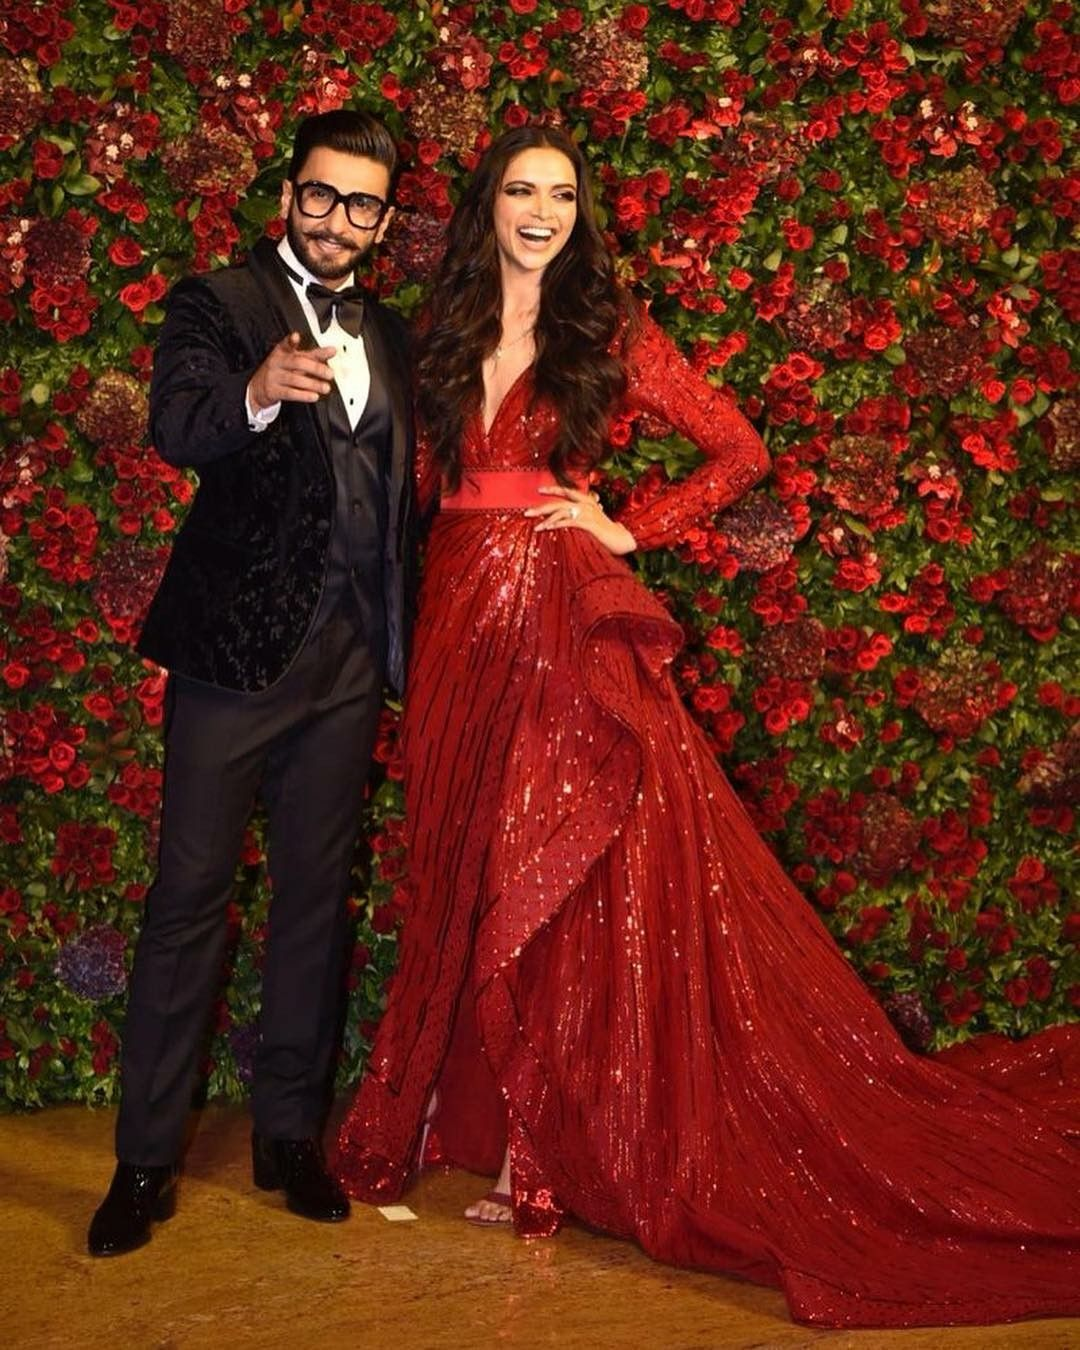 Pin By Haneen Haneen On Actors India Red Wedding Gowns Indian Reception Outfit Reception Dress